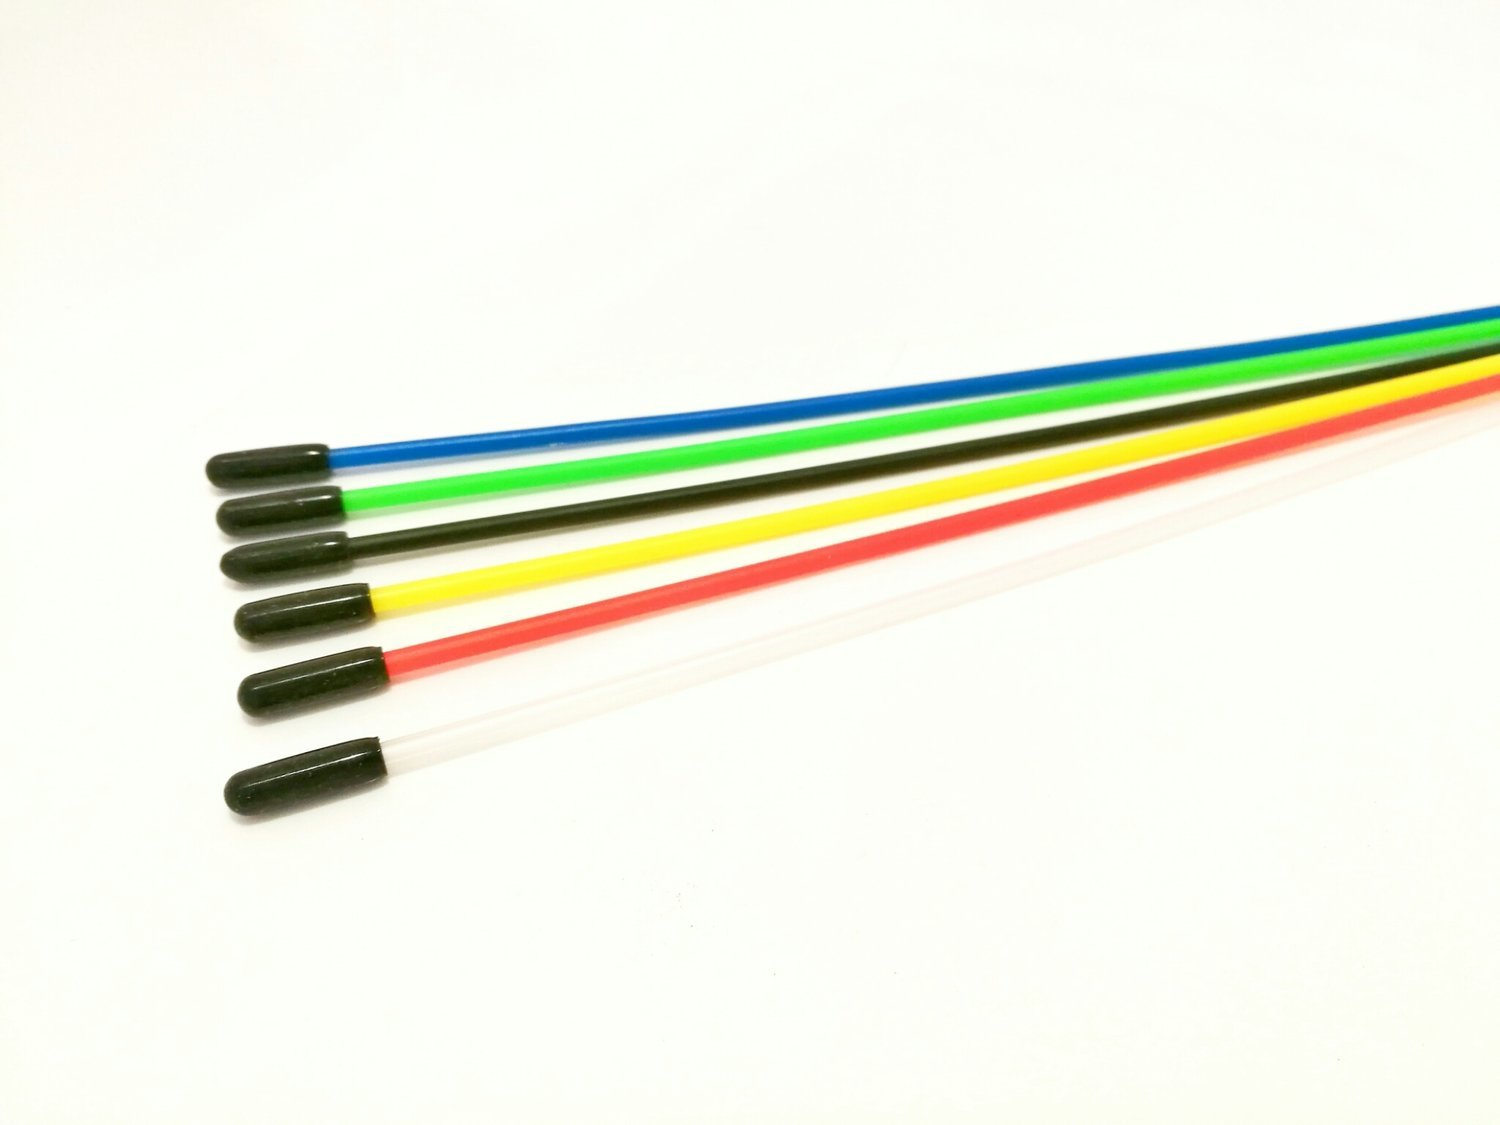 Antenna Tube (27.5mm)